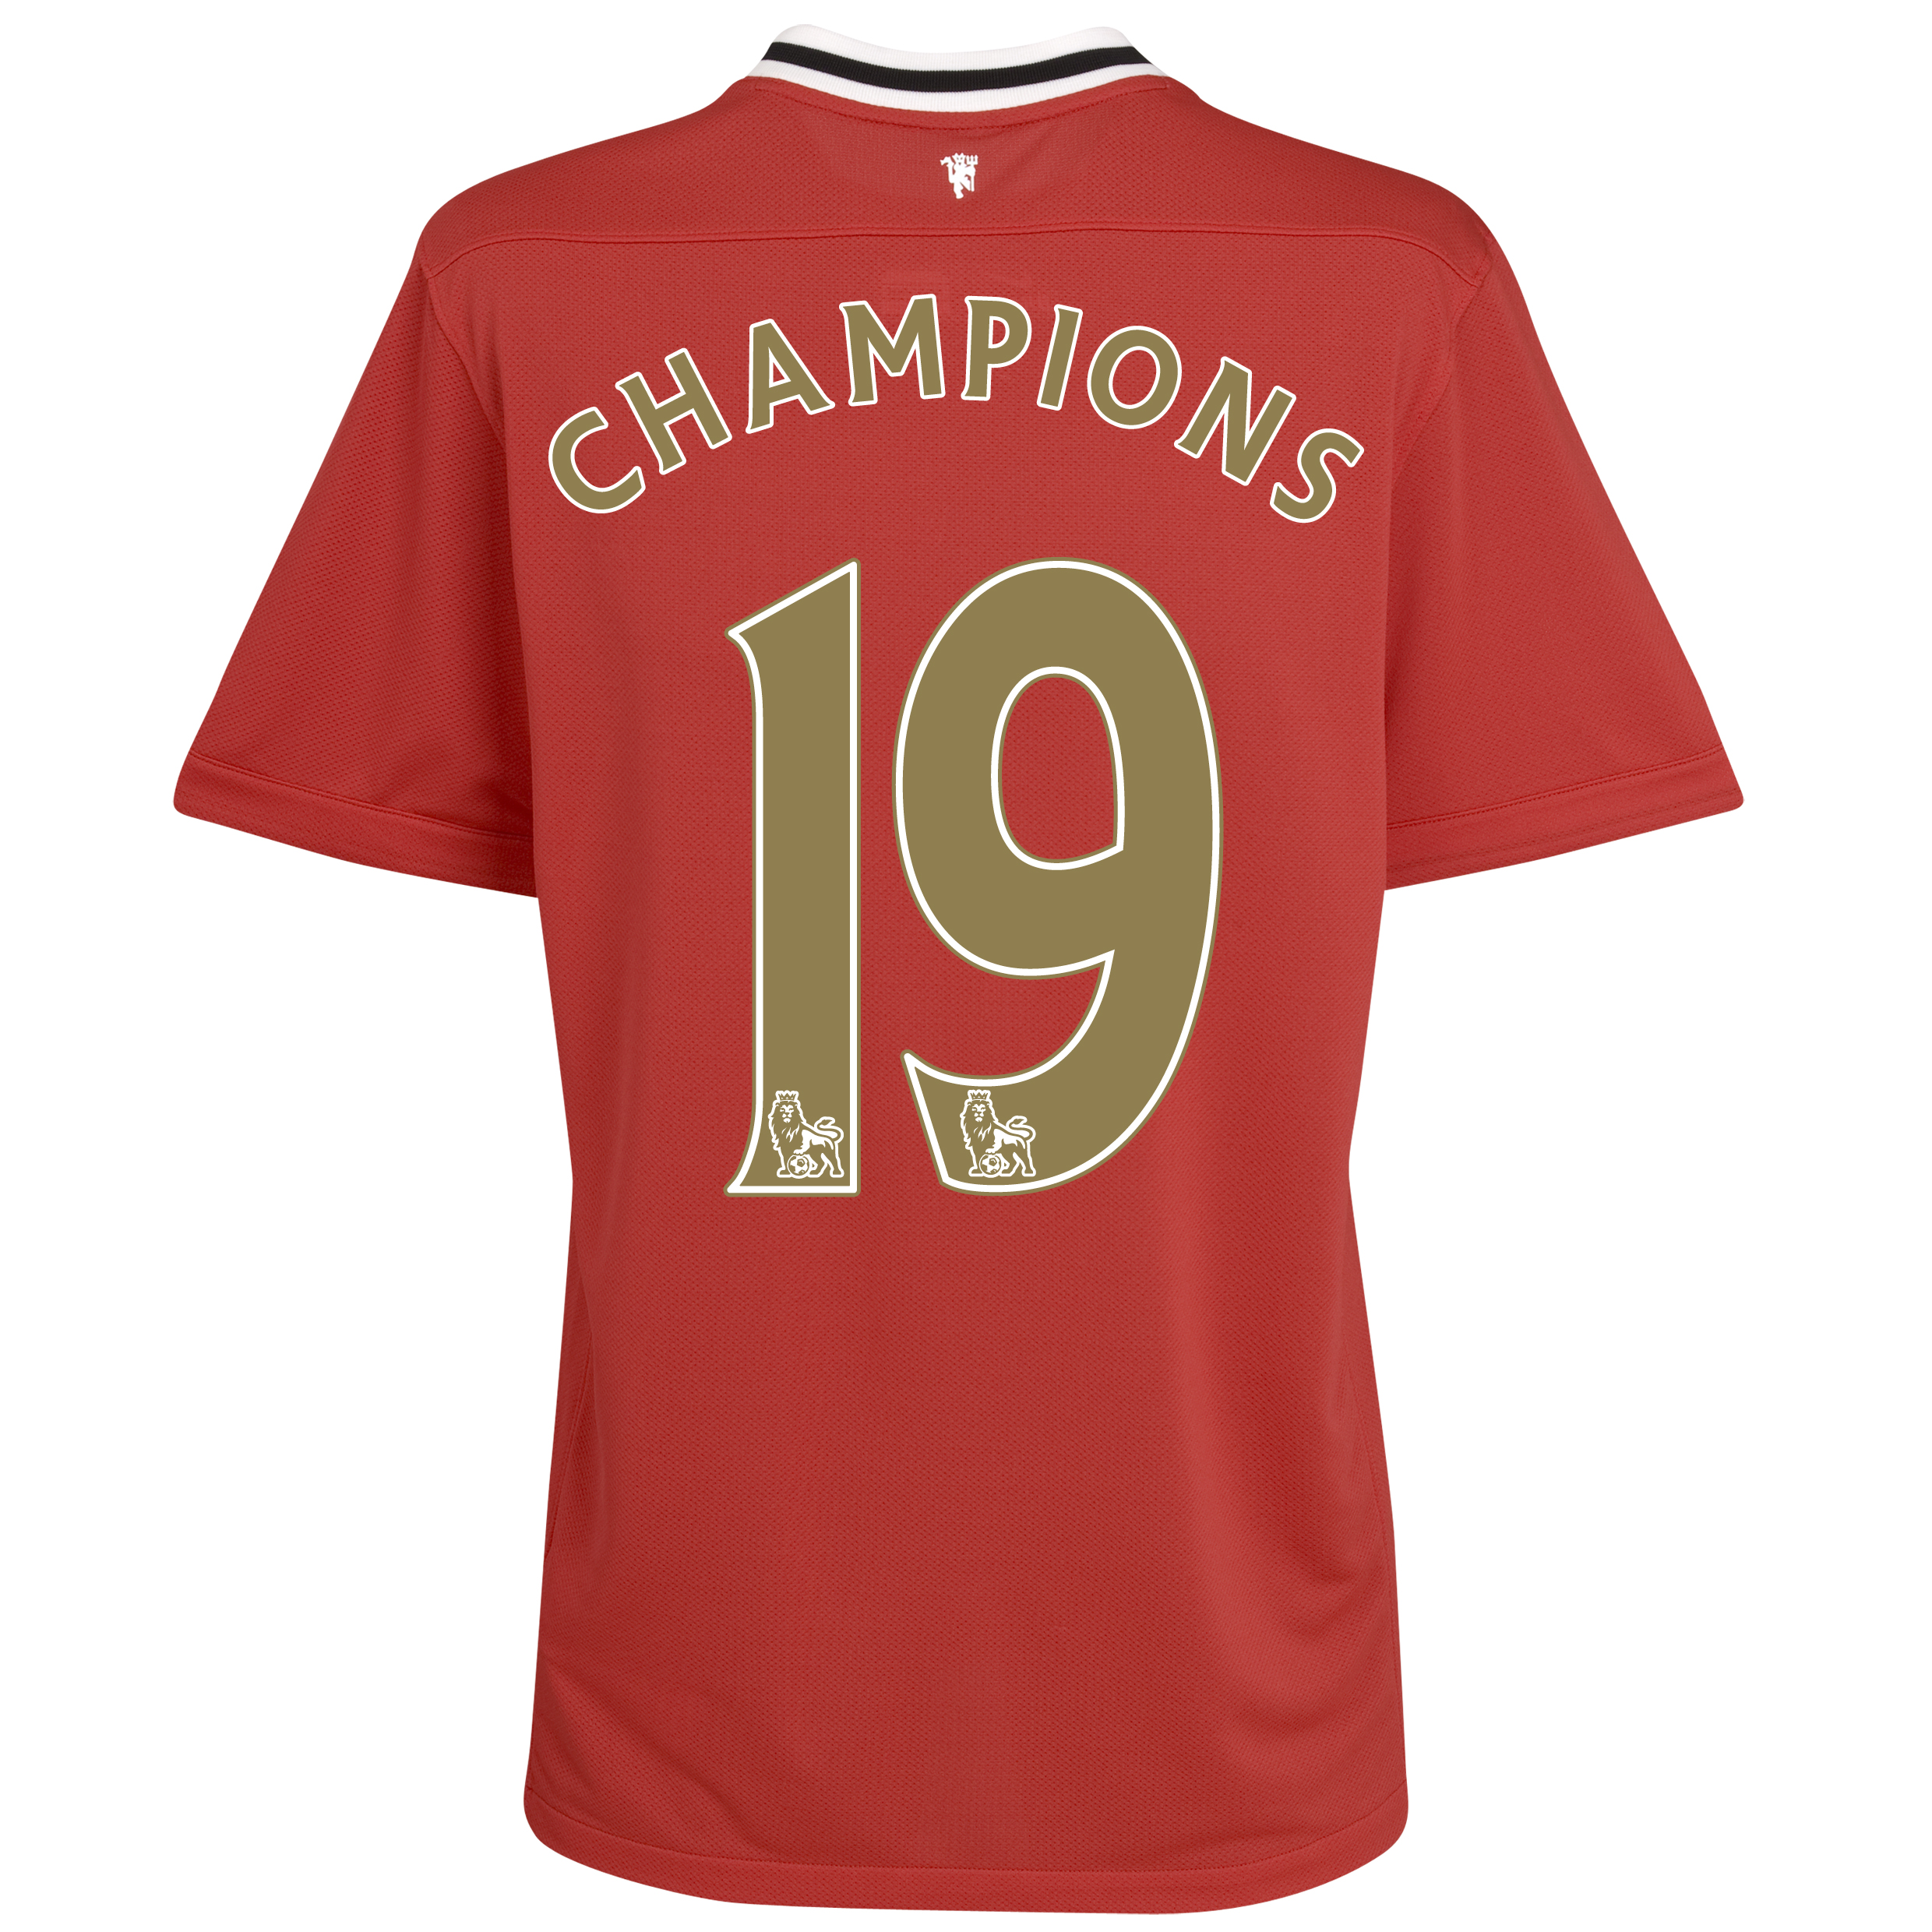 Manchester United Home Shirt 2011/12 with Champions 19 printing